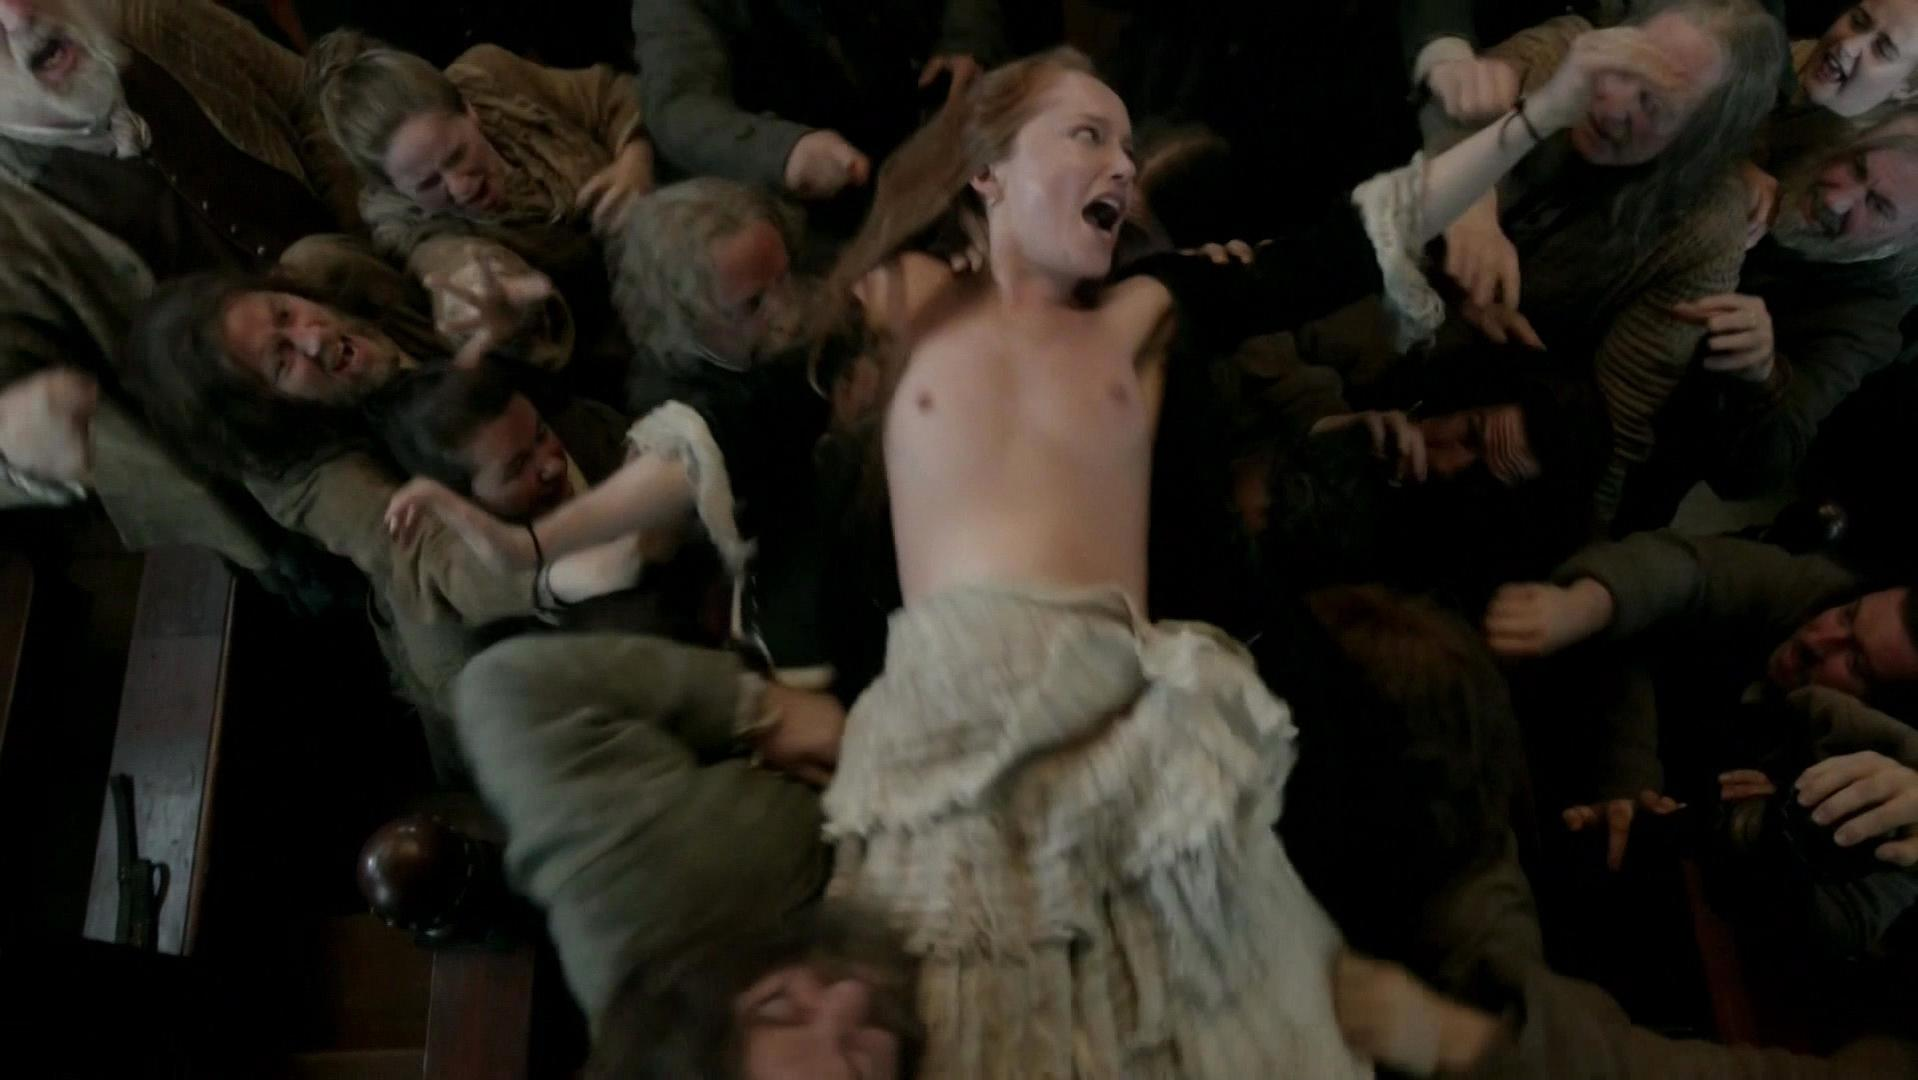 Caitriona balfe and lotte verbeek nude outlander s01e10 10